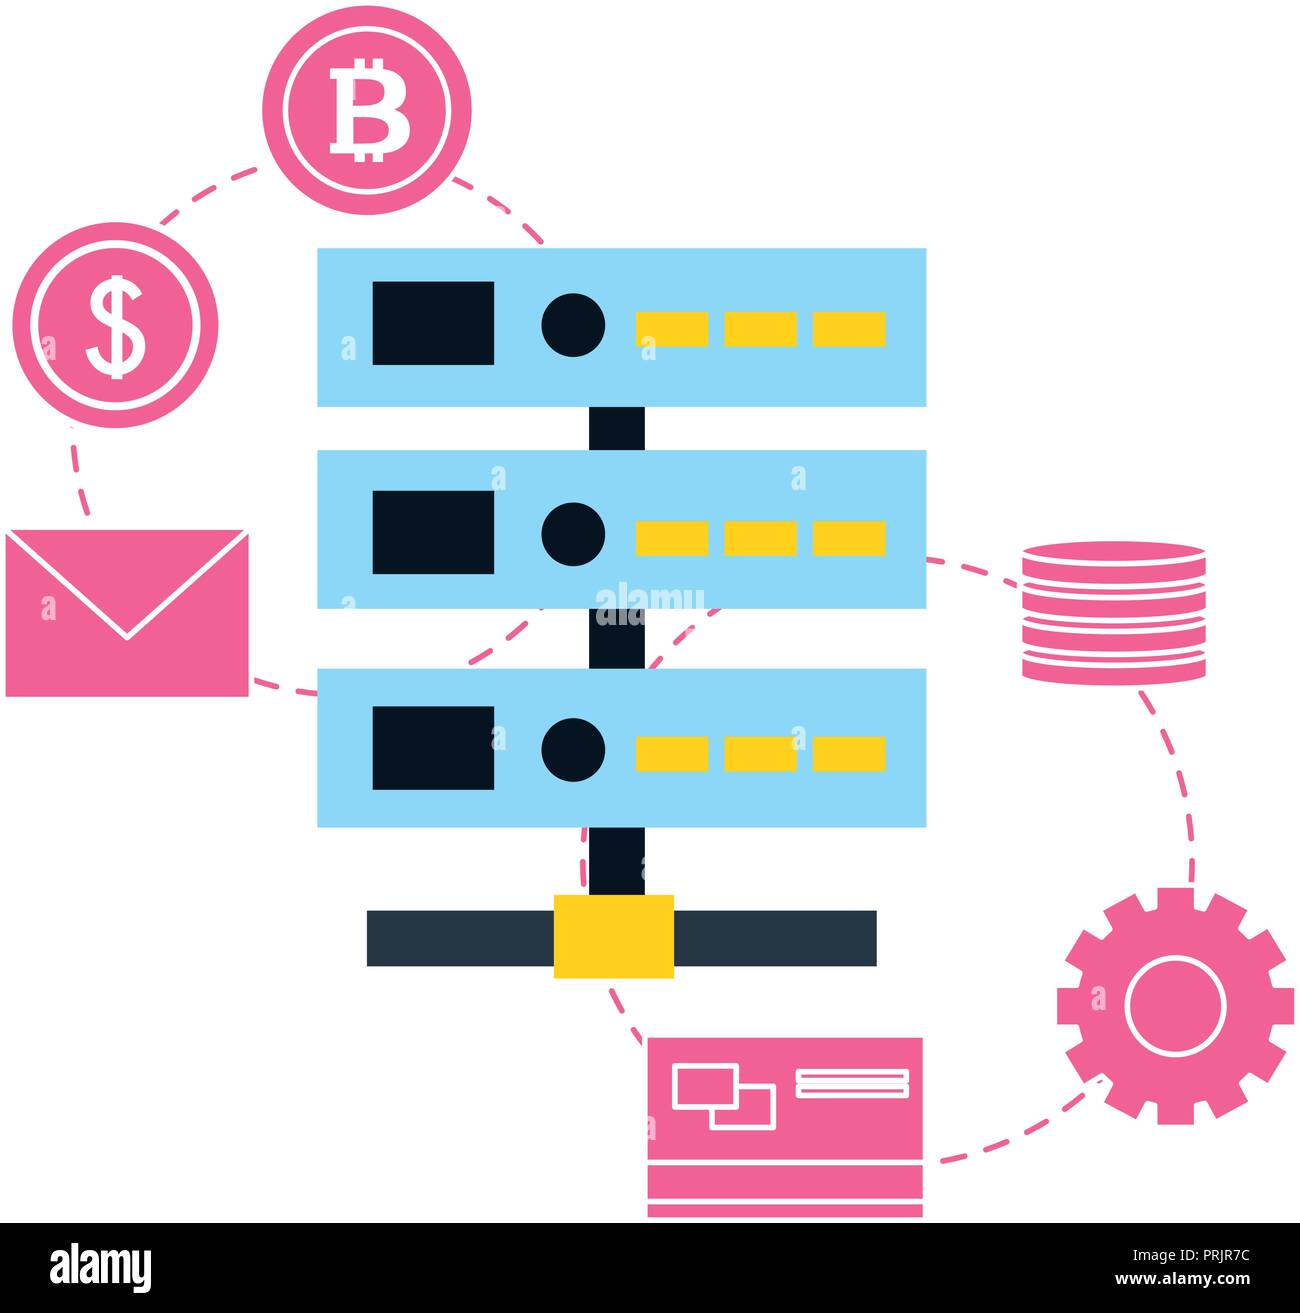 Database And Bank Stock Photos & Database And Bank Stock